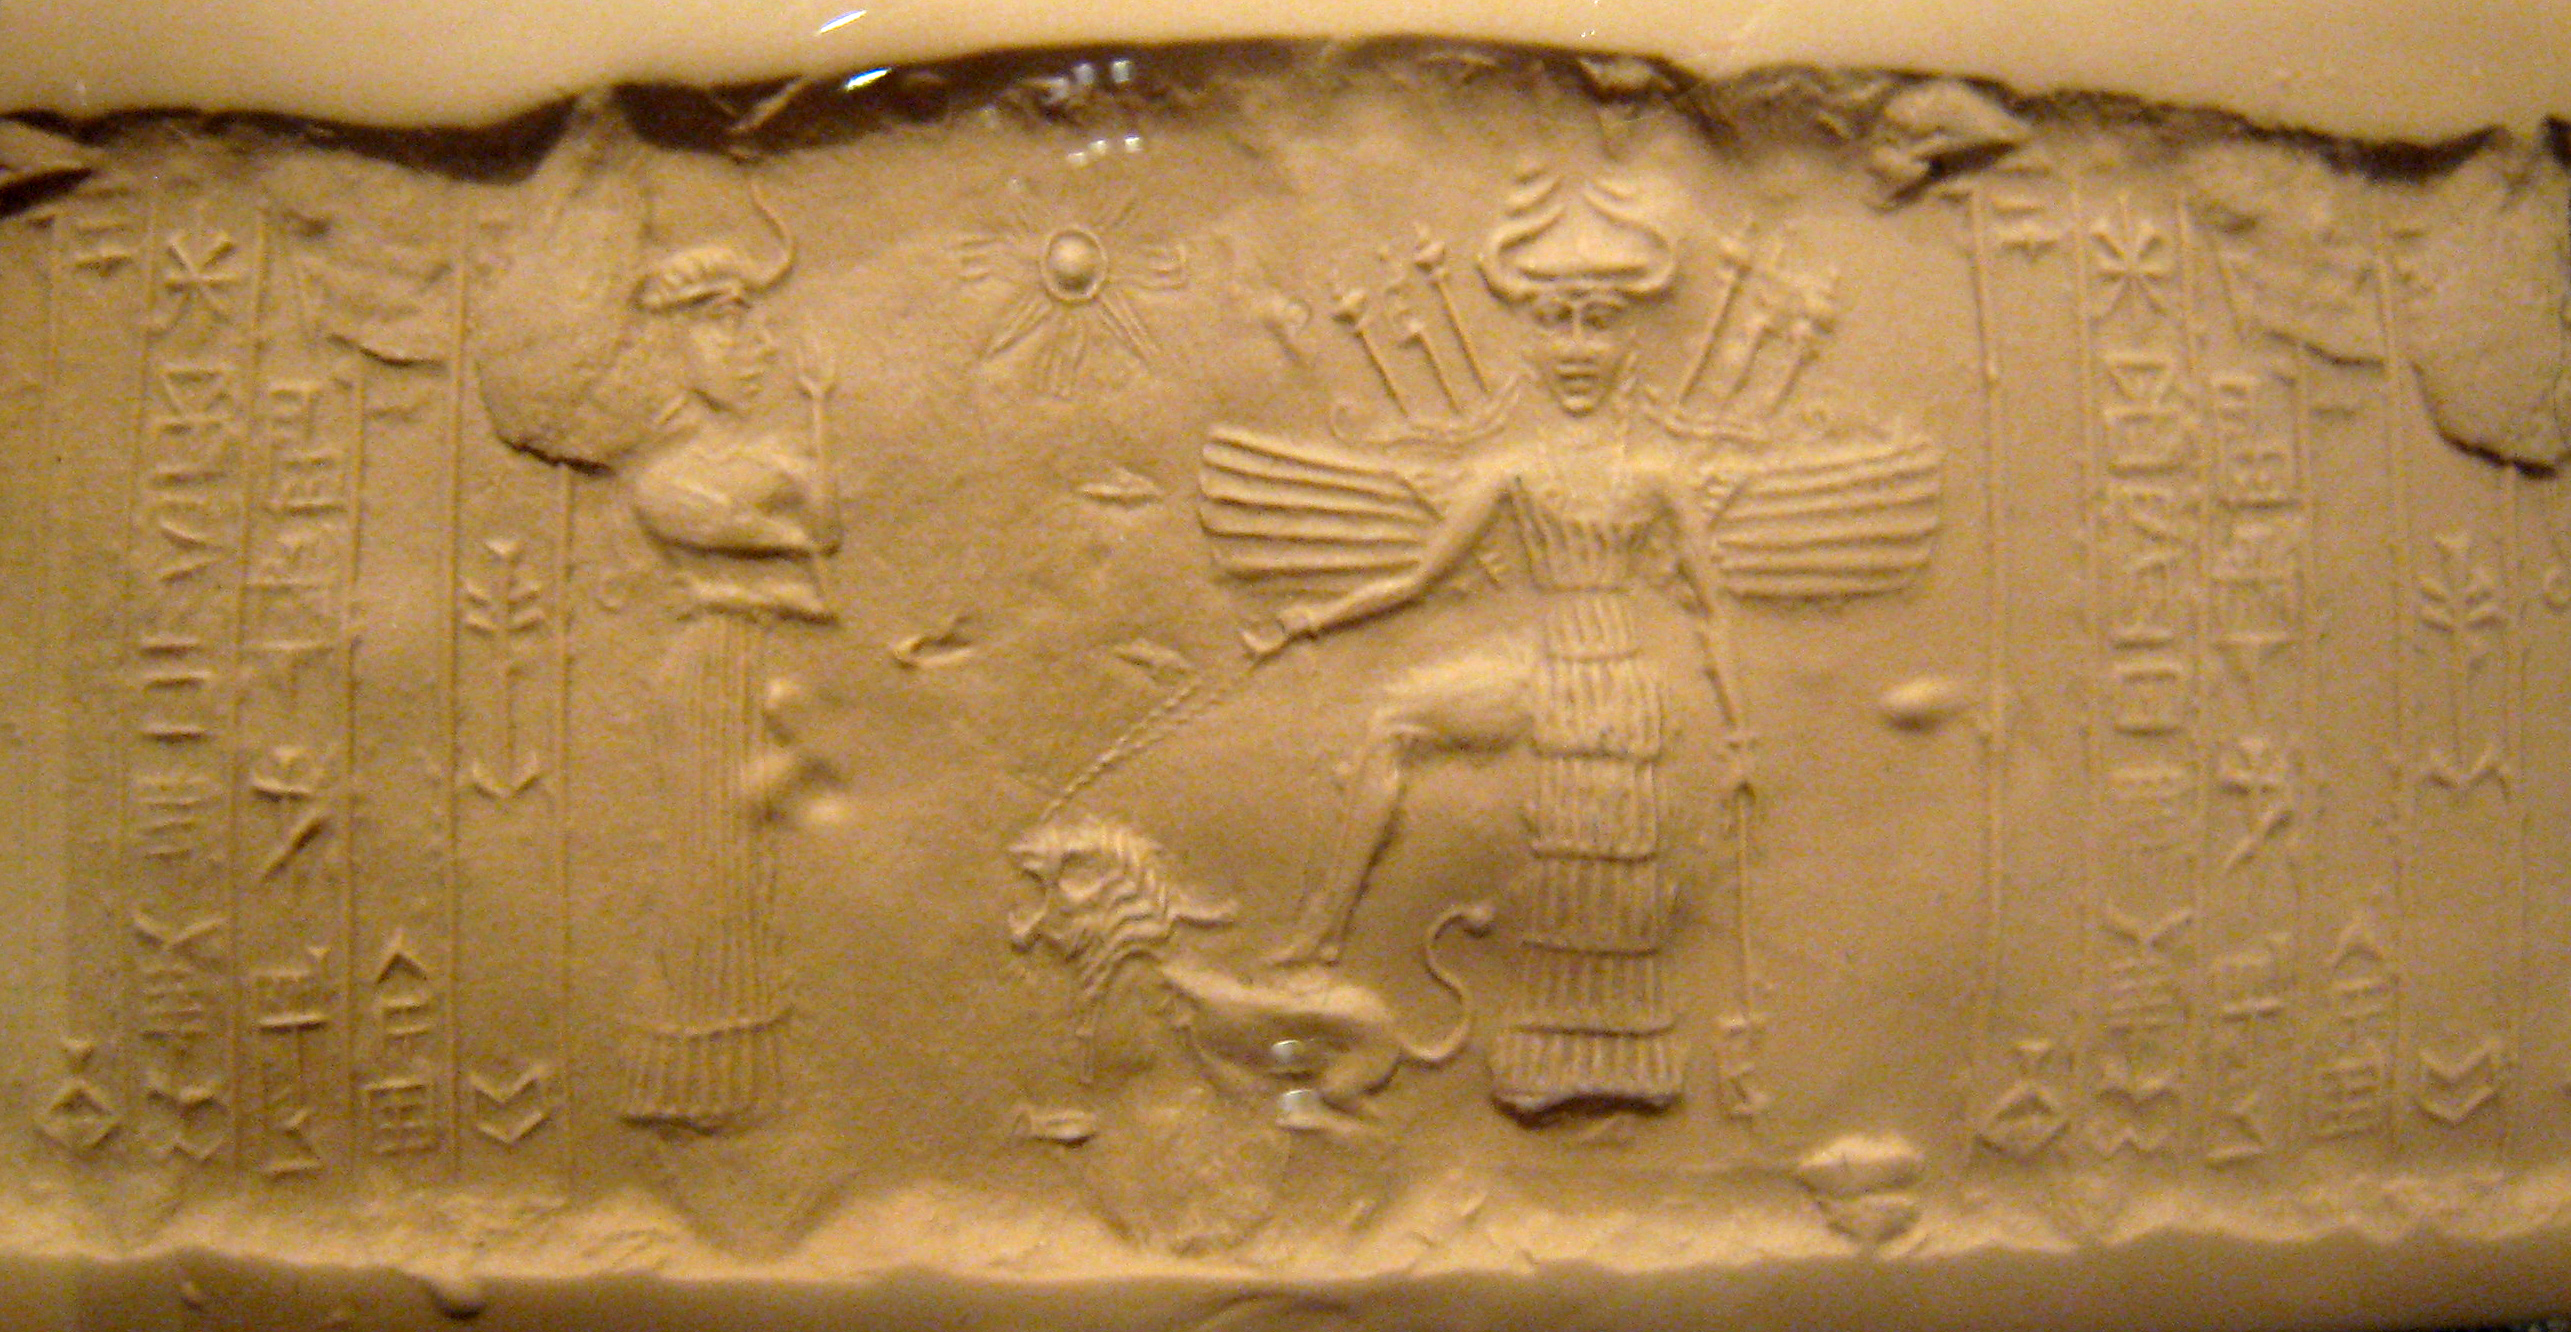 Ninshubur & Ishtar - Inanna on an ancient Mesopotamian seal artefact, Inanna with her high-tech alien weaponry, standing upon a lion, her zodiac sign of Leo, artefacts of the alien gods & goddesses are shamefully being destroyed by Radical Islam, fearing the ancient evidence depicted over & over again, erodes their credibility as religious power-brokers of Islam